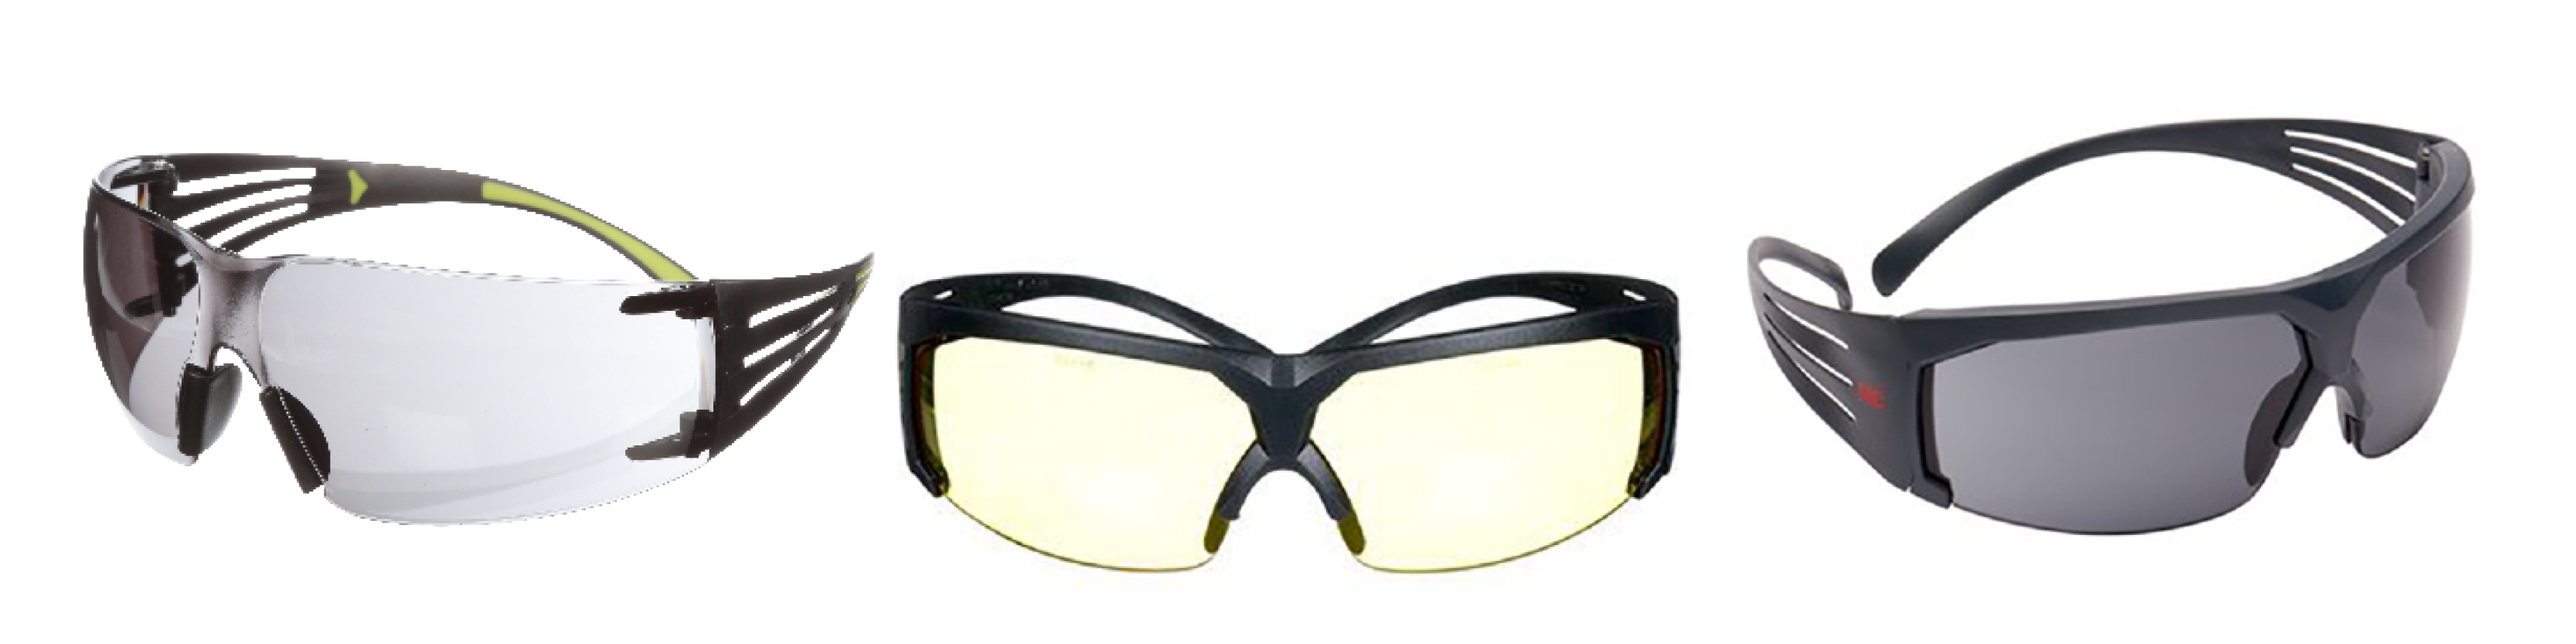 3m products safety glasses